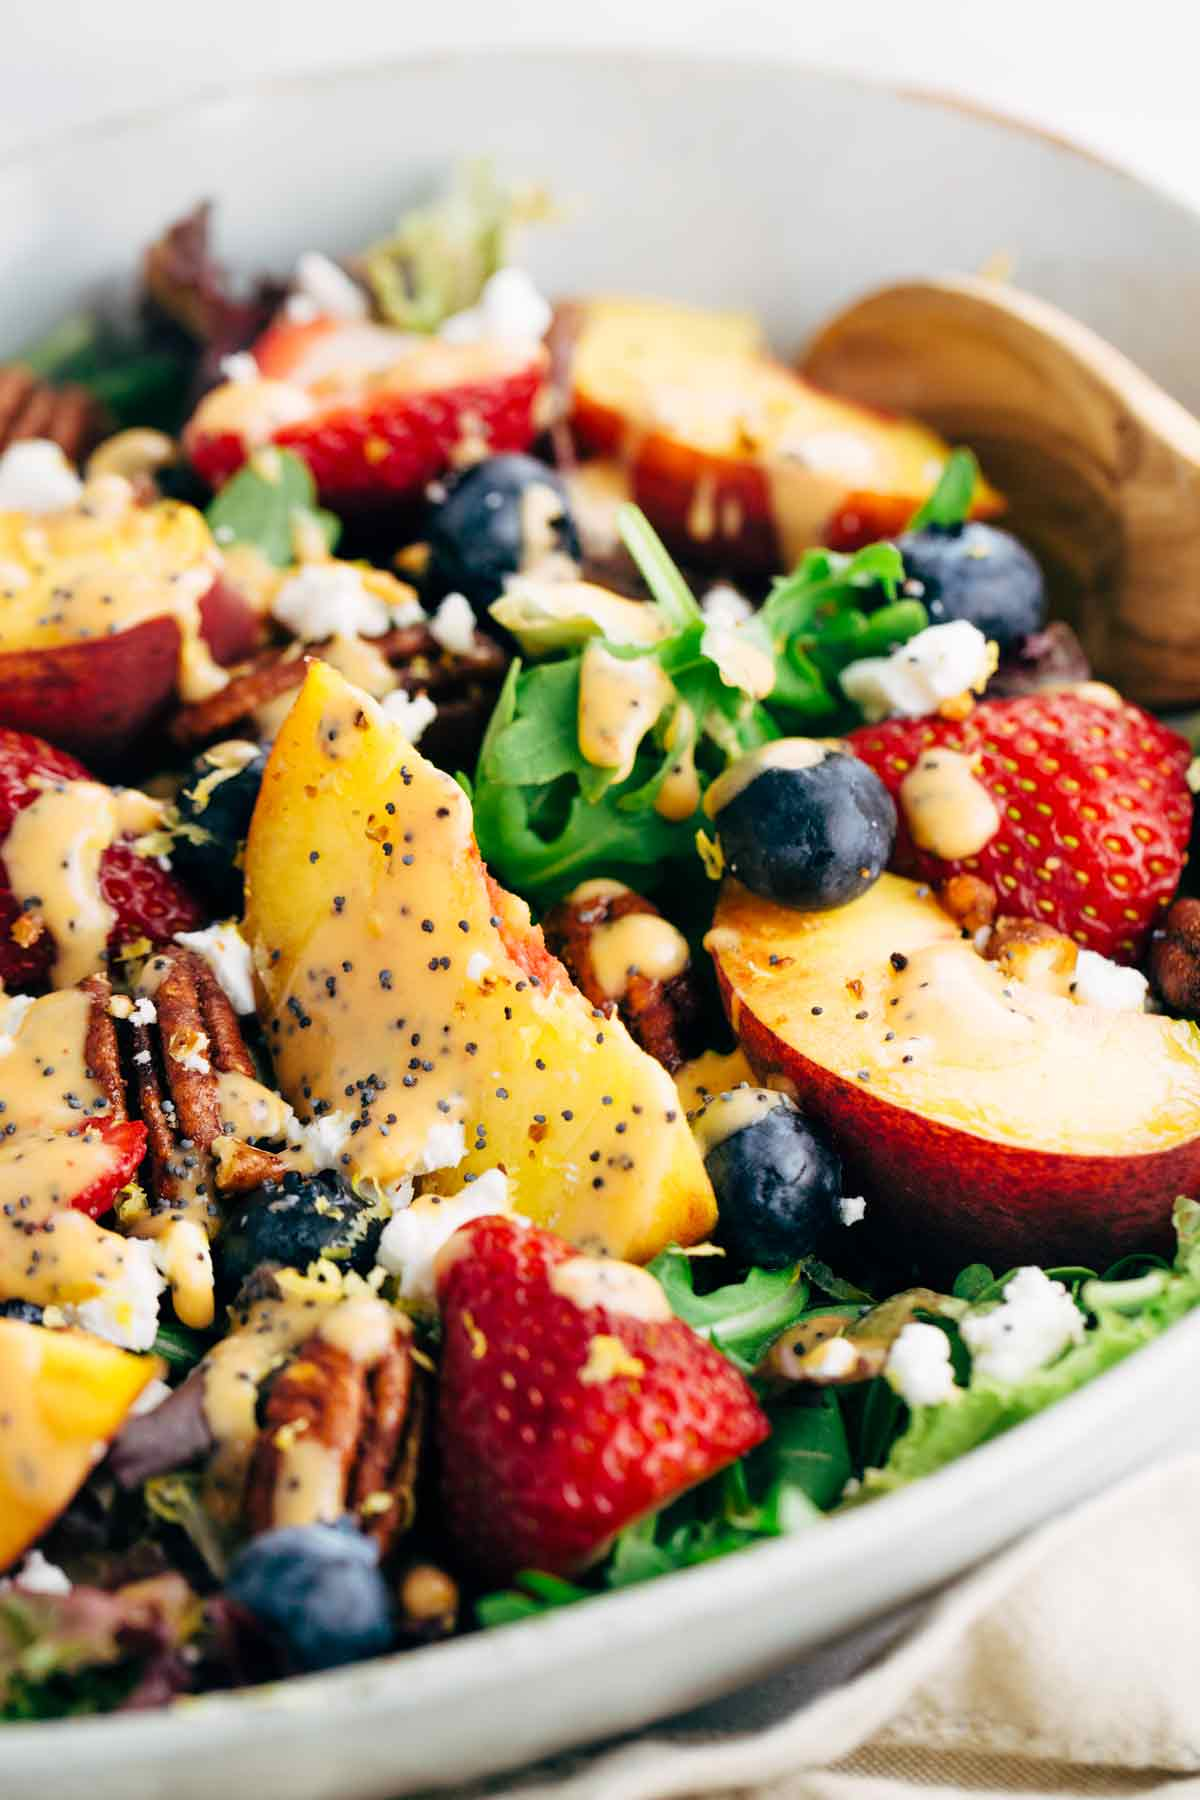 healthy fruit salads recipes does blending fruit make it less healthy